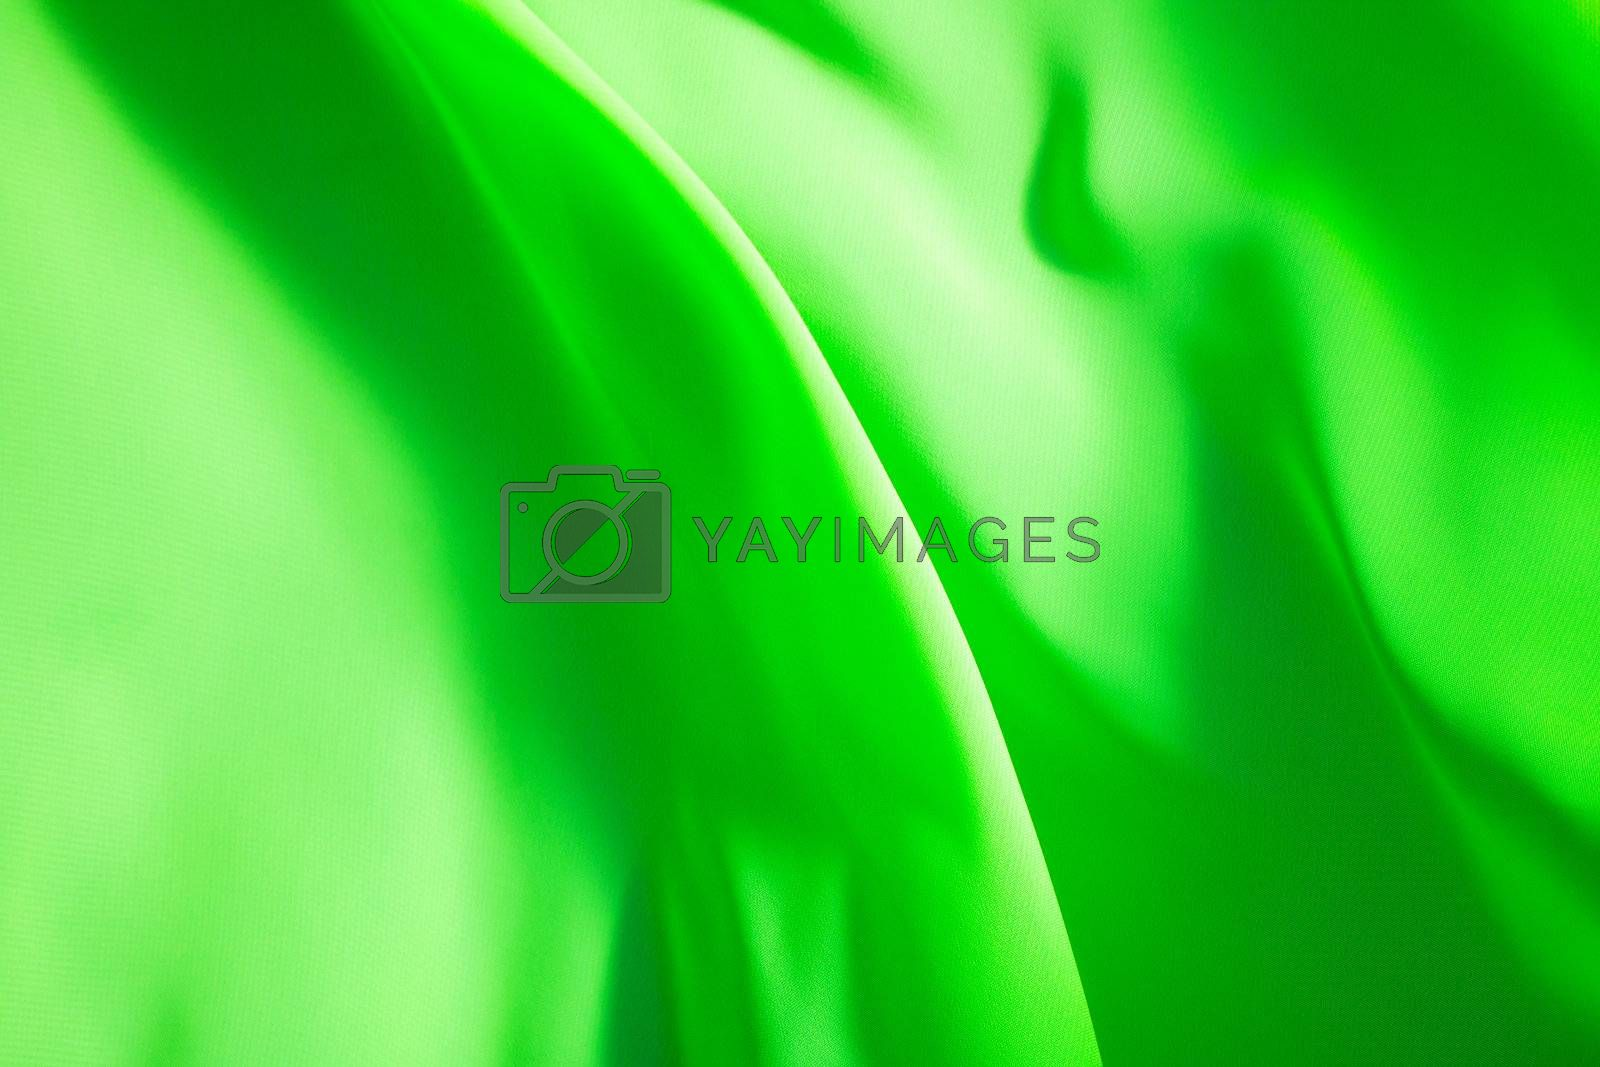 green fabric winds waves, creating a beautiful background of the folds